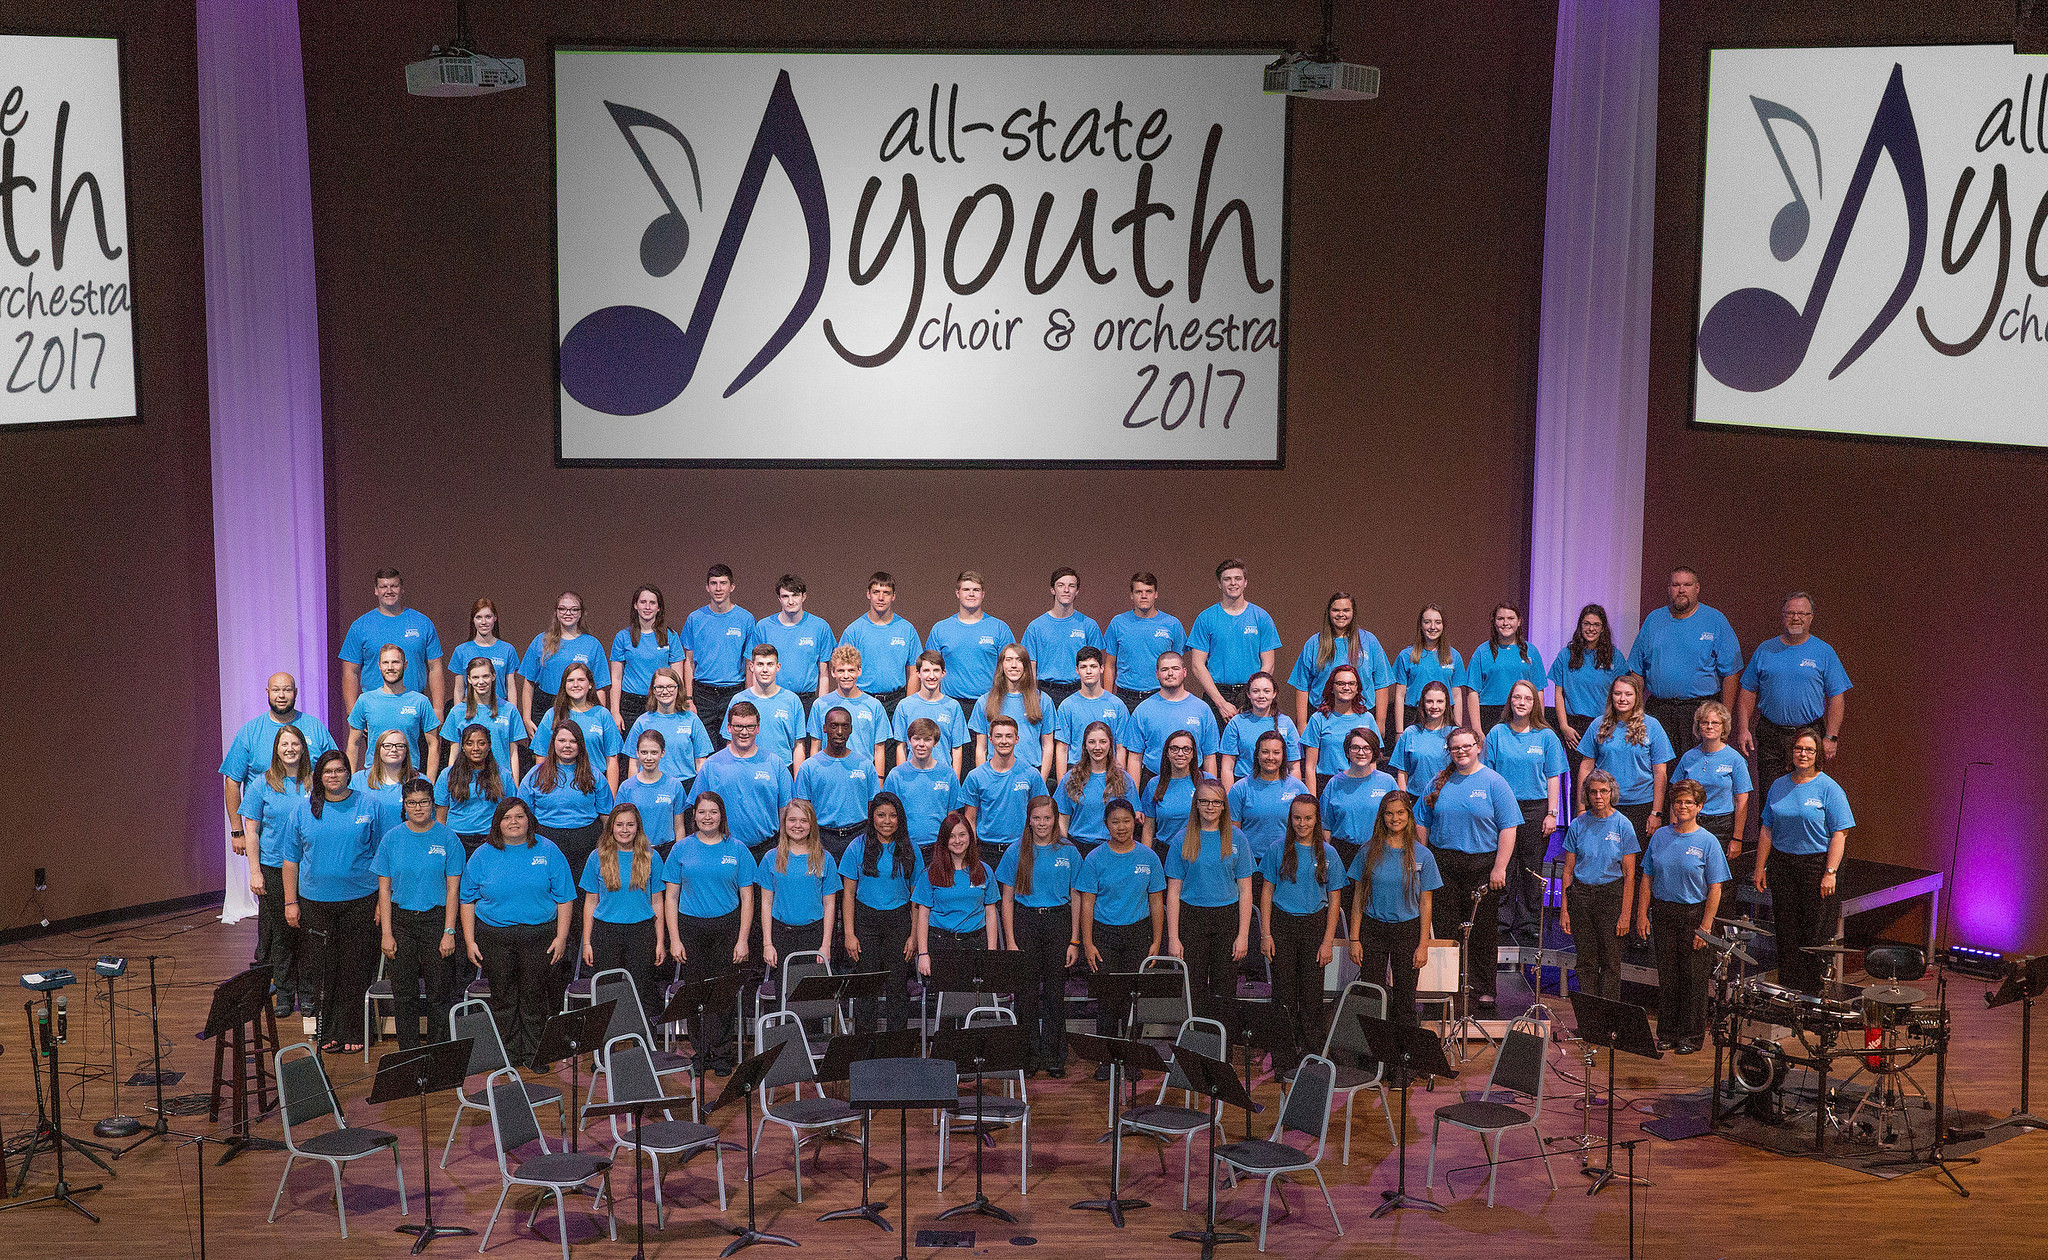 Seventy-five talented high school students from Baptist churches across Kentucky will be showcased at an elite regional choir conference in Louisville on Wednesday, Feb. 20, 2018. (Kentucky Today/Robin Cornetet)